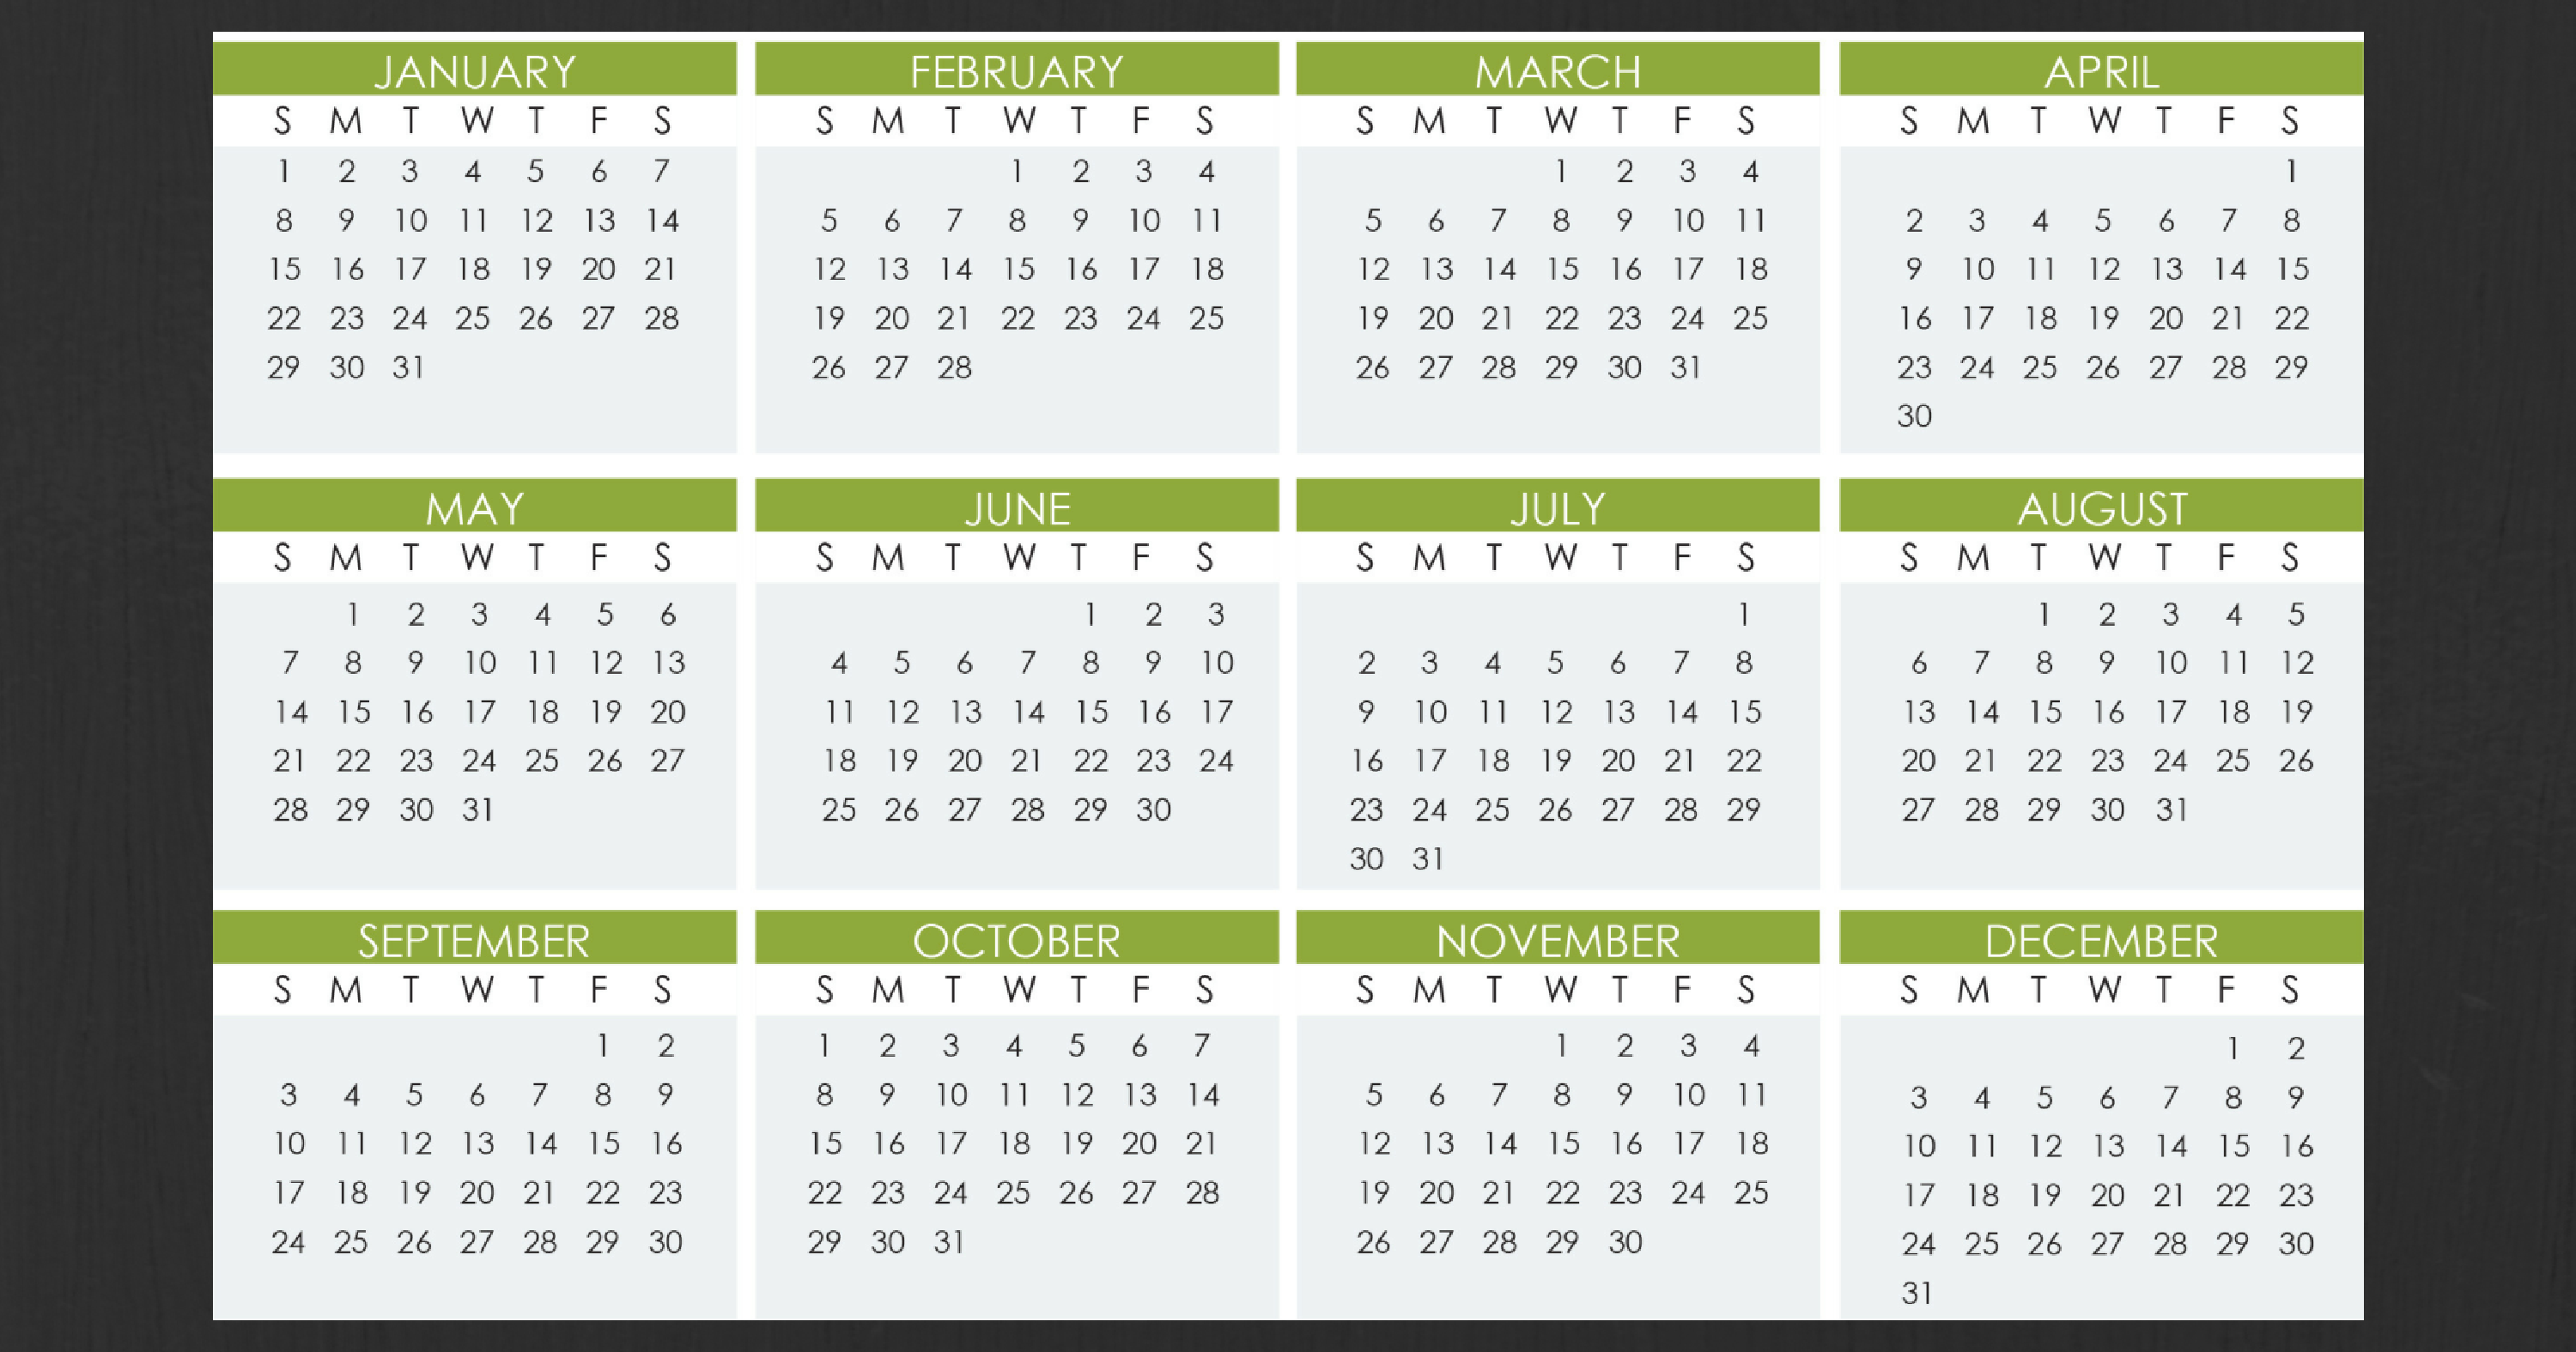 Stay Organized Next Year with Our 2017 Calendar and Tax Deadline Guide